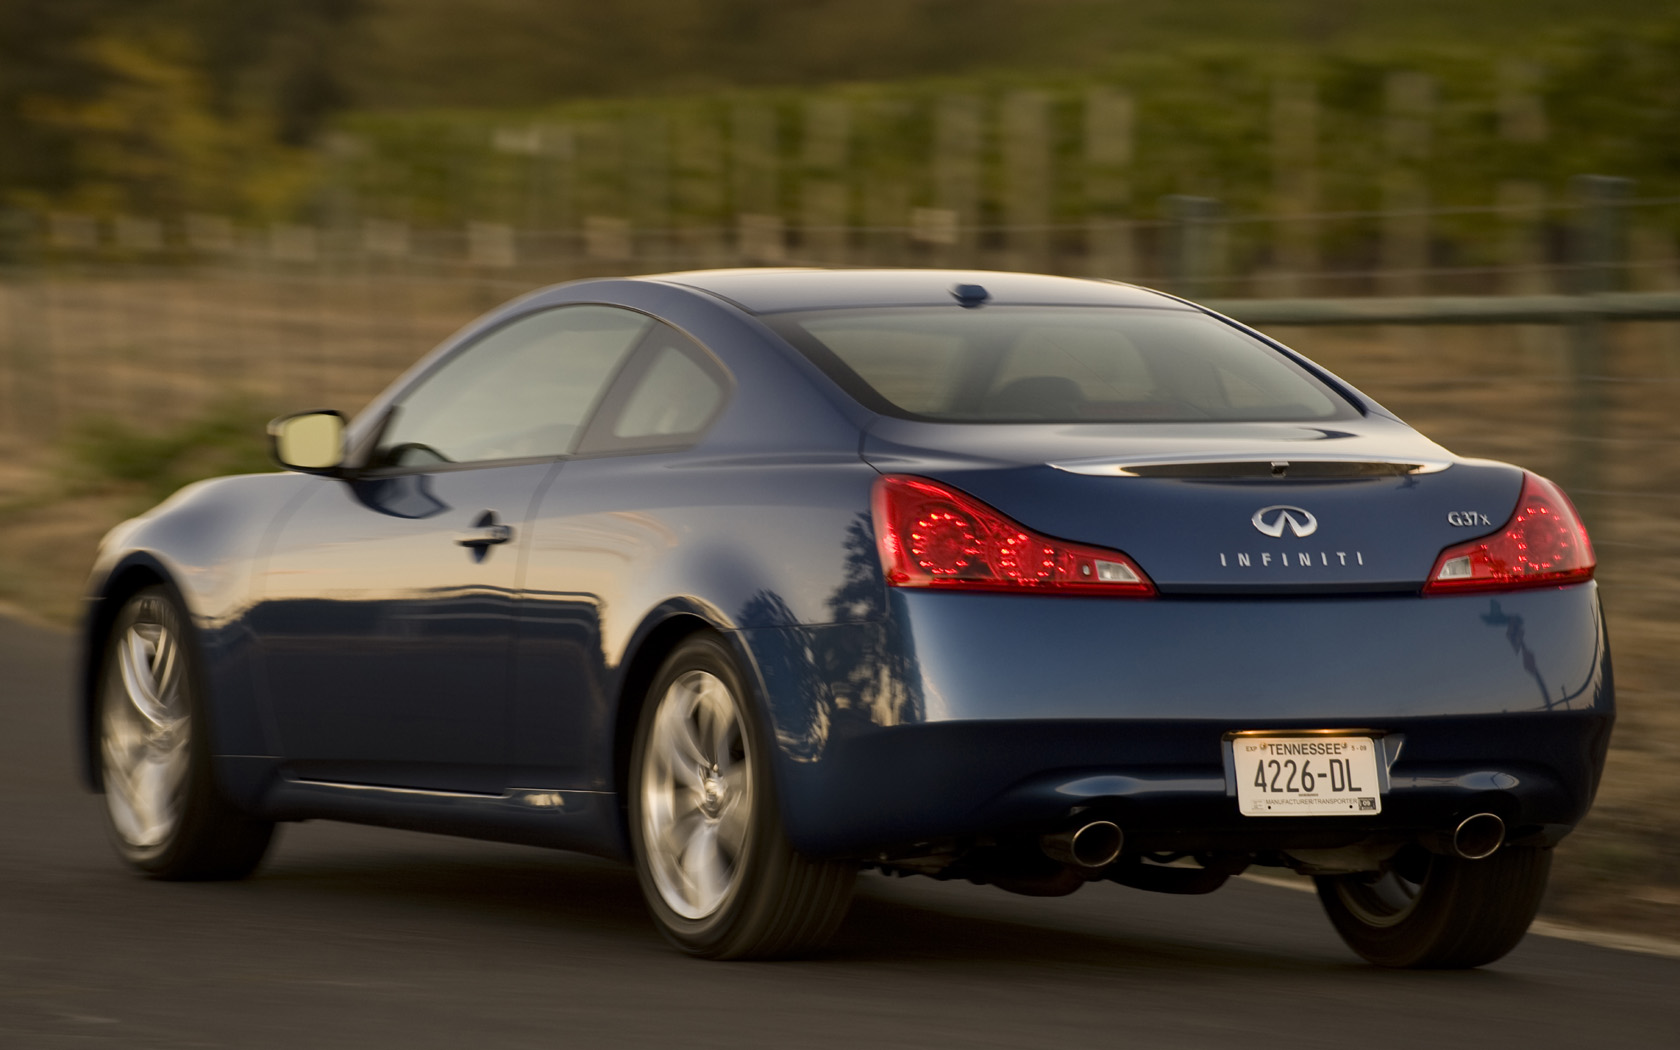 2008 2011 infiniti g37x coupe free widescreen. Black Bedroom Furniture Sets. Home Design Ideas